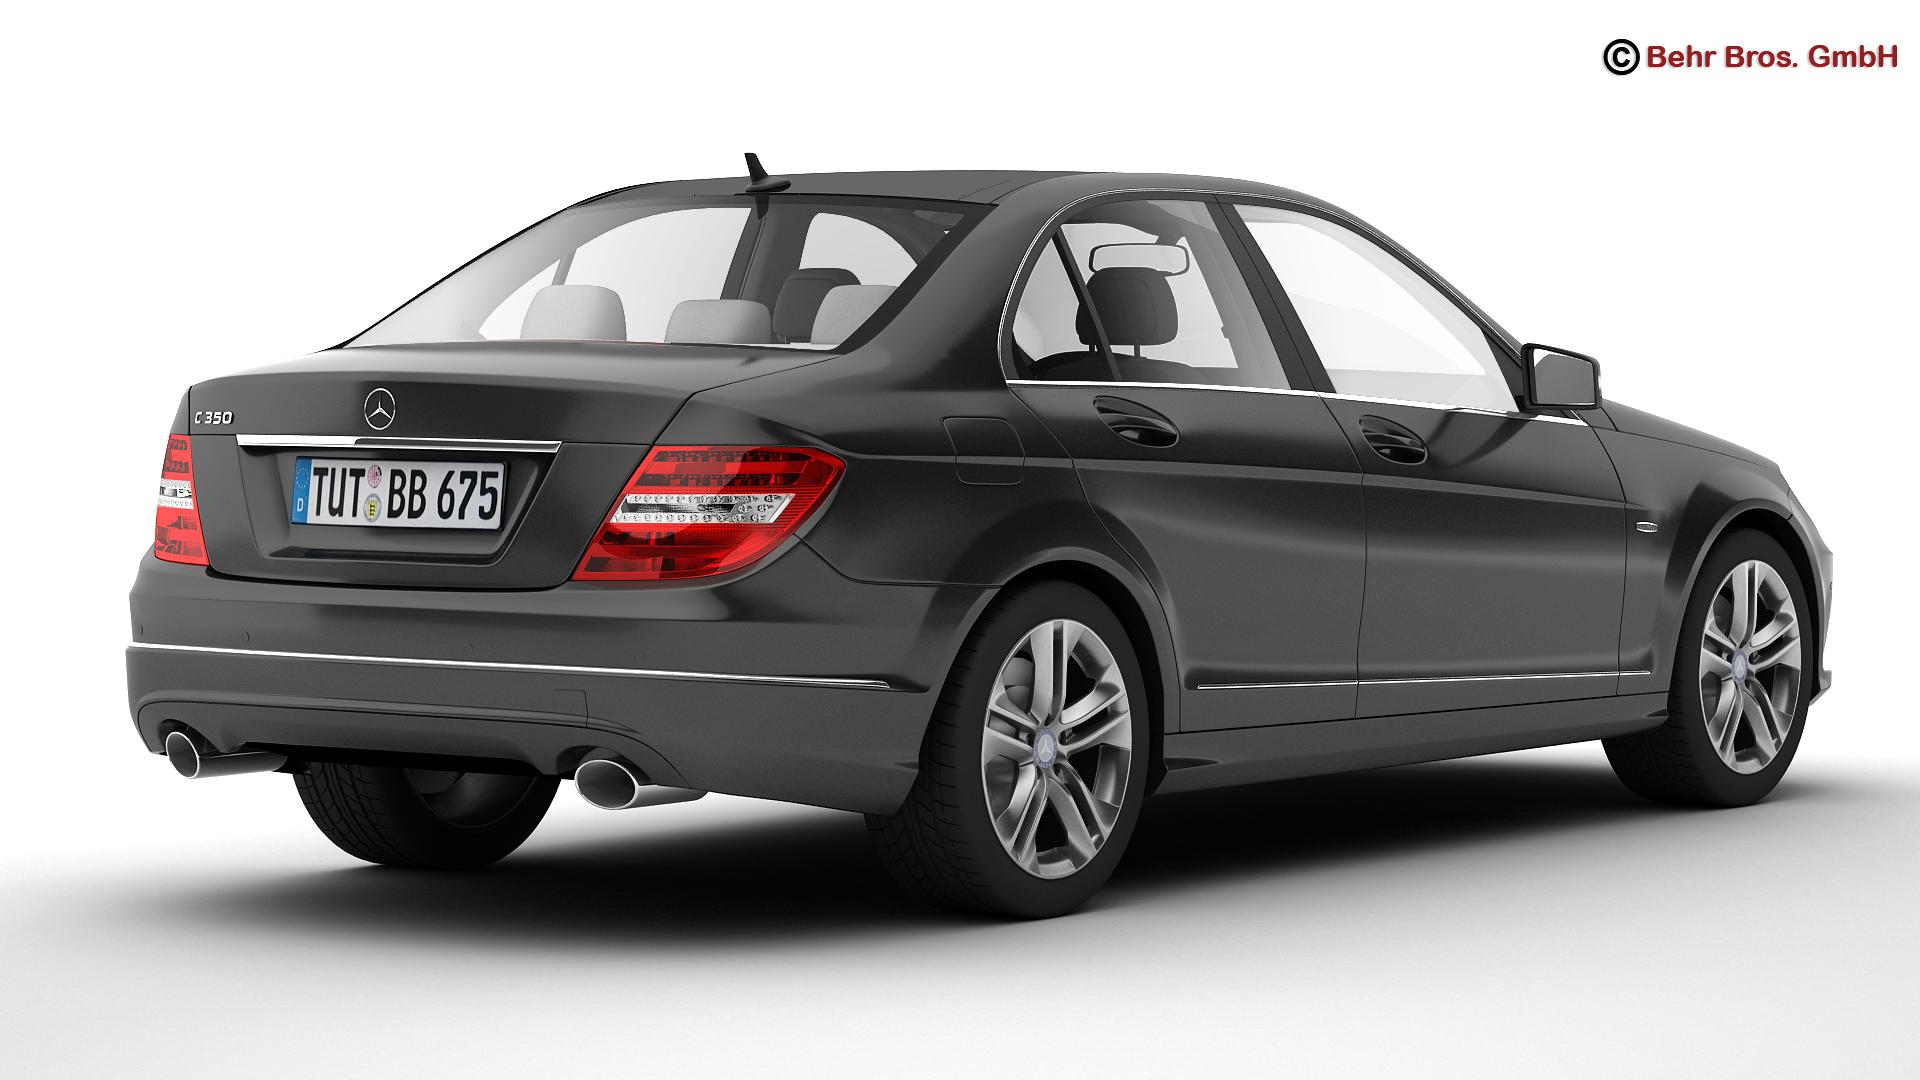 Mercedes c class 2012 3d model for 2012 mercedes benz c300 tire size